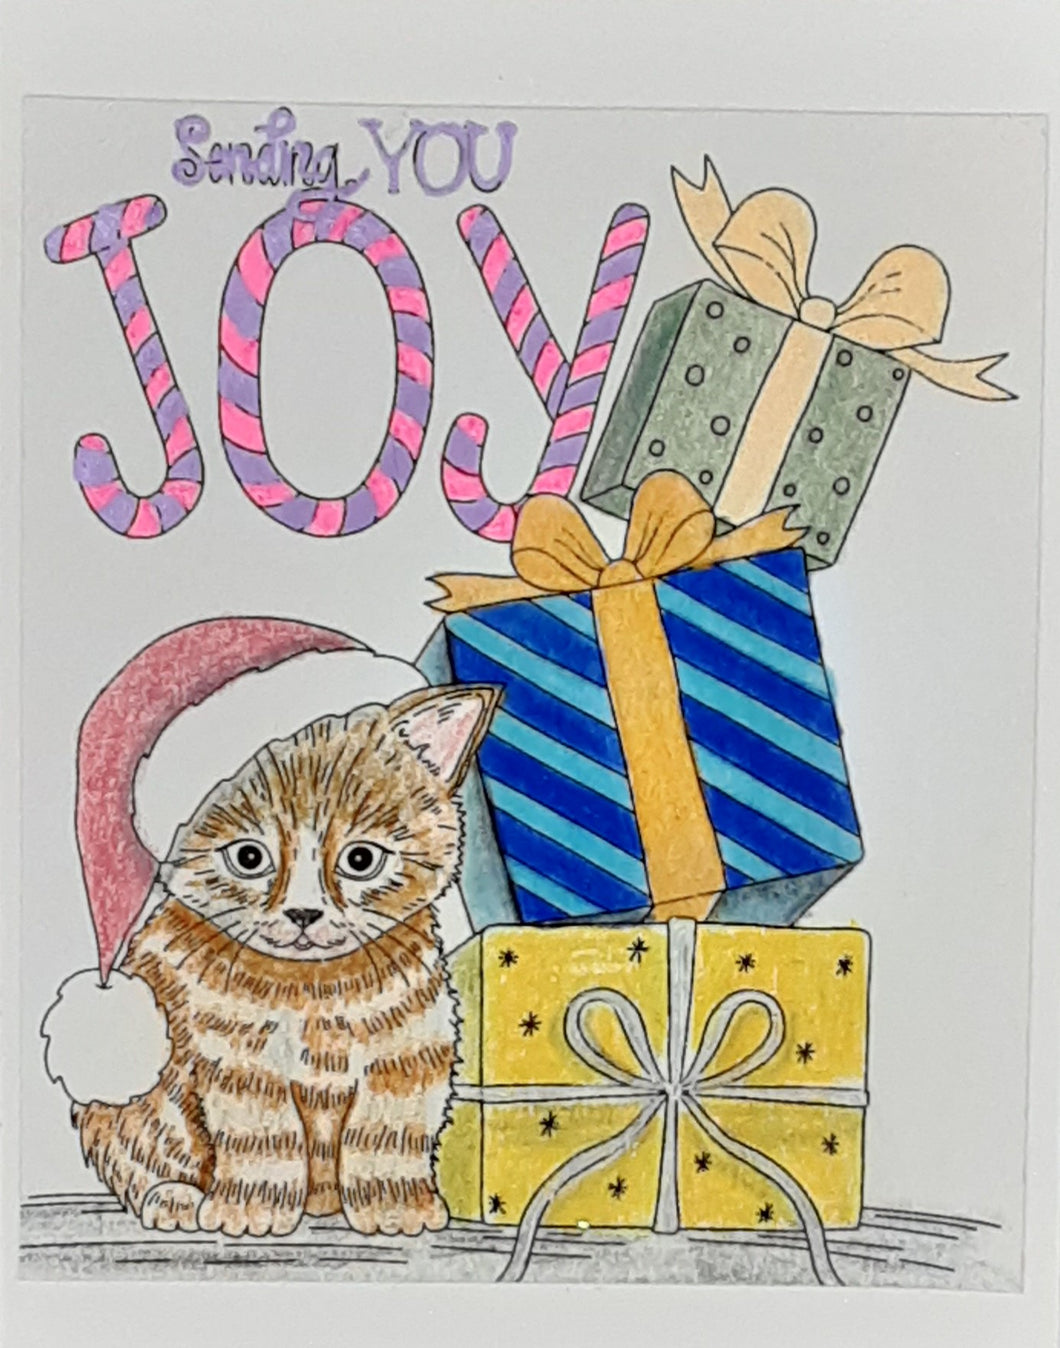 Sending you Joy Greeting Card